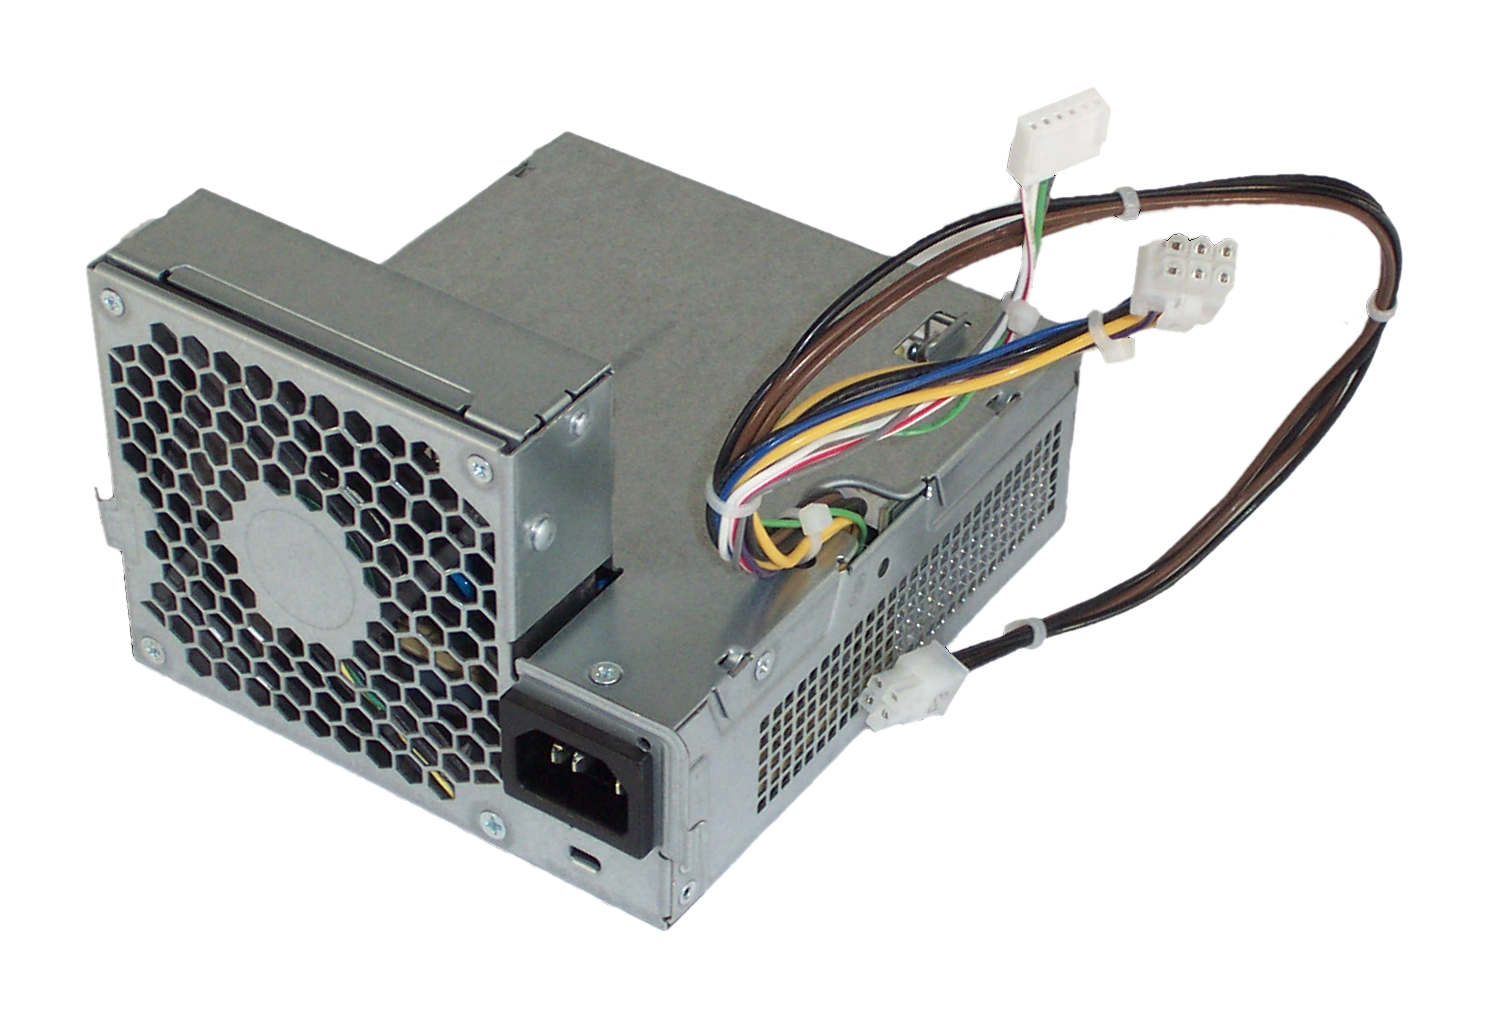 HP Compaq 613762-001 DPS-240TB A 8200 Elite SFF 240W Power Supply - 611481-001